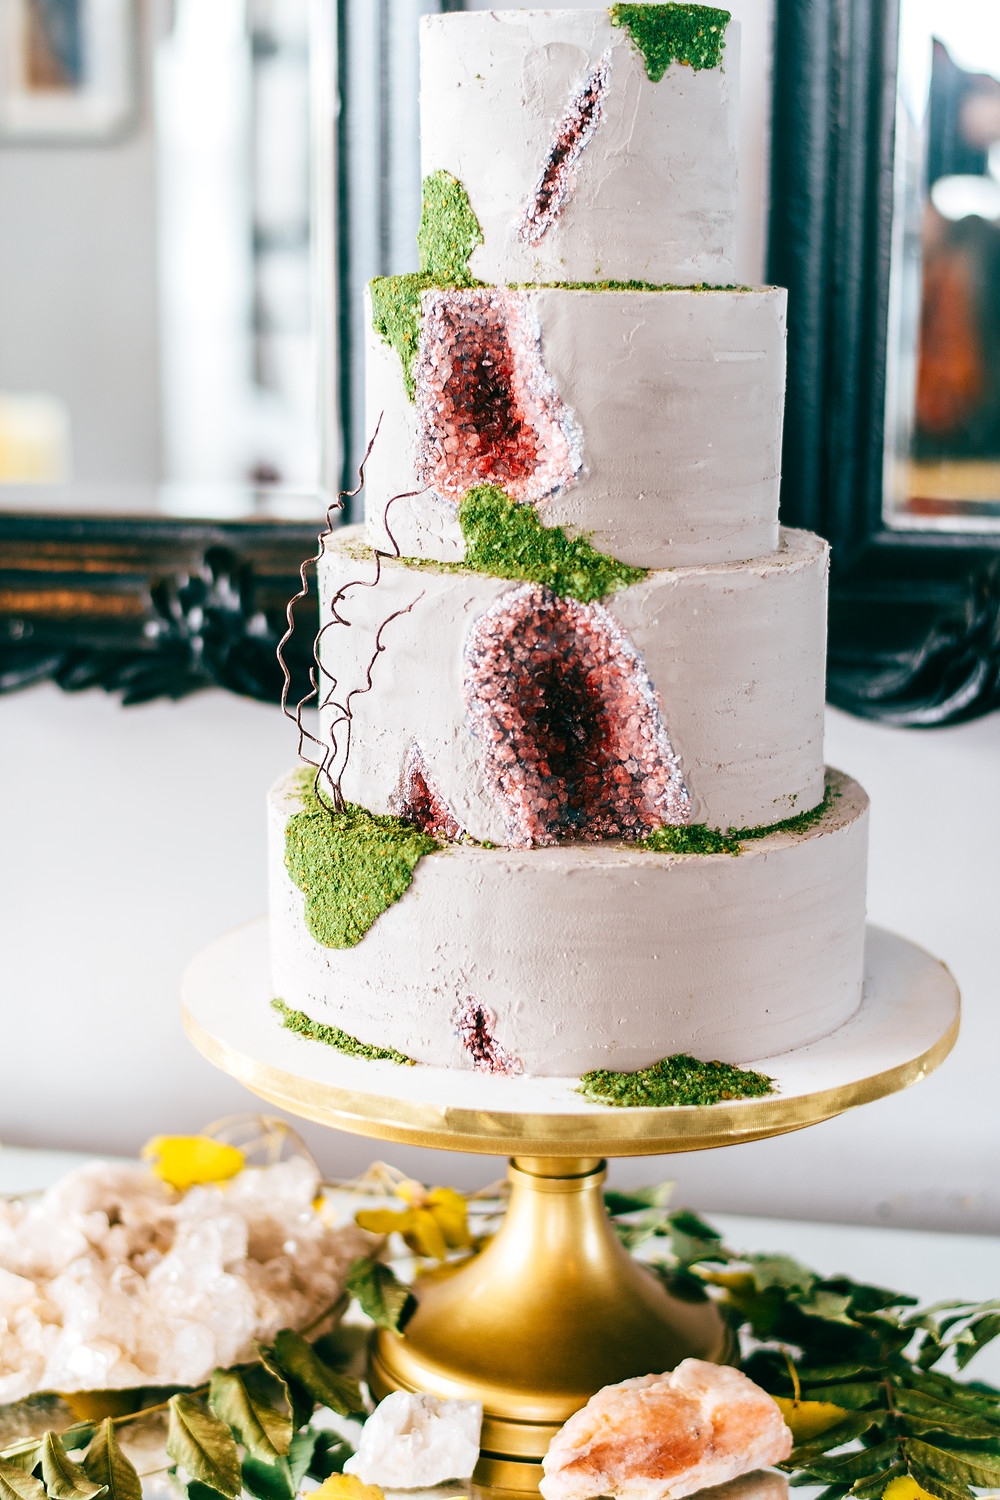 Dark & Moody Post-Apocalyptic Wedding Concrete and Geode Wedding Cake